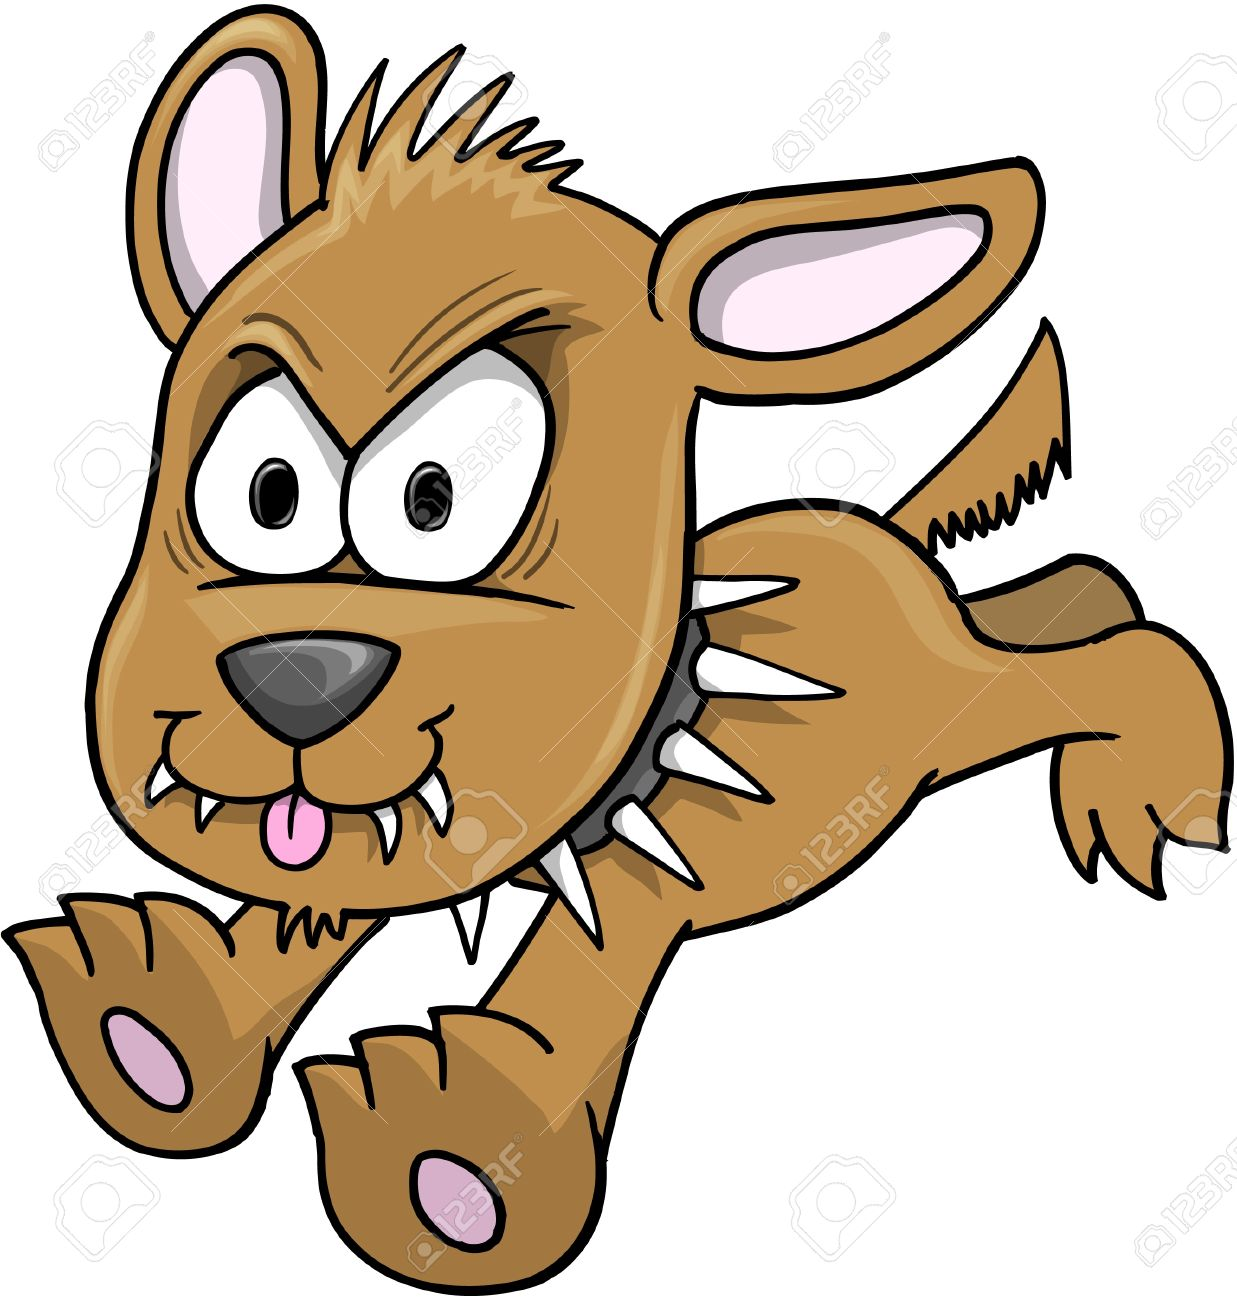 Angry dog pictures clipart clipart transparent library Mean Dog Cartoon Clipart | Free download best Mean Dog Cartoon ... clipart transparent library